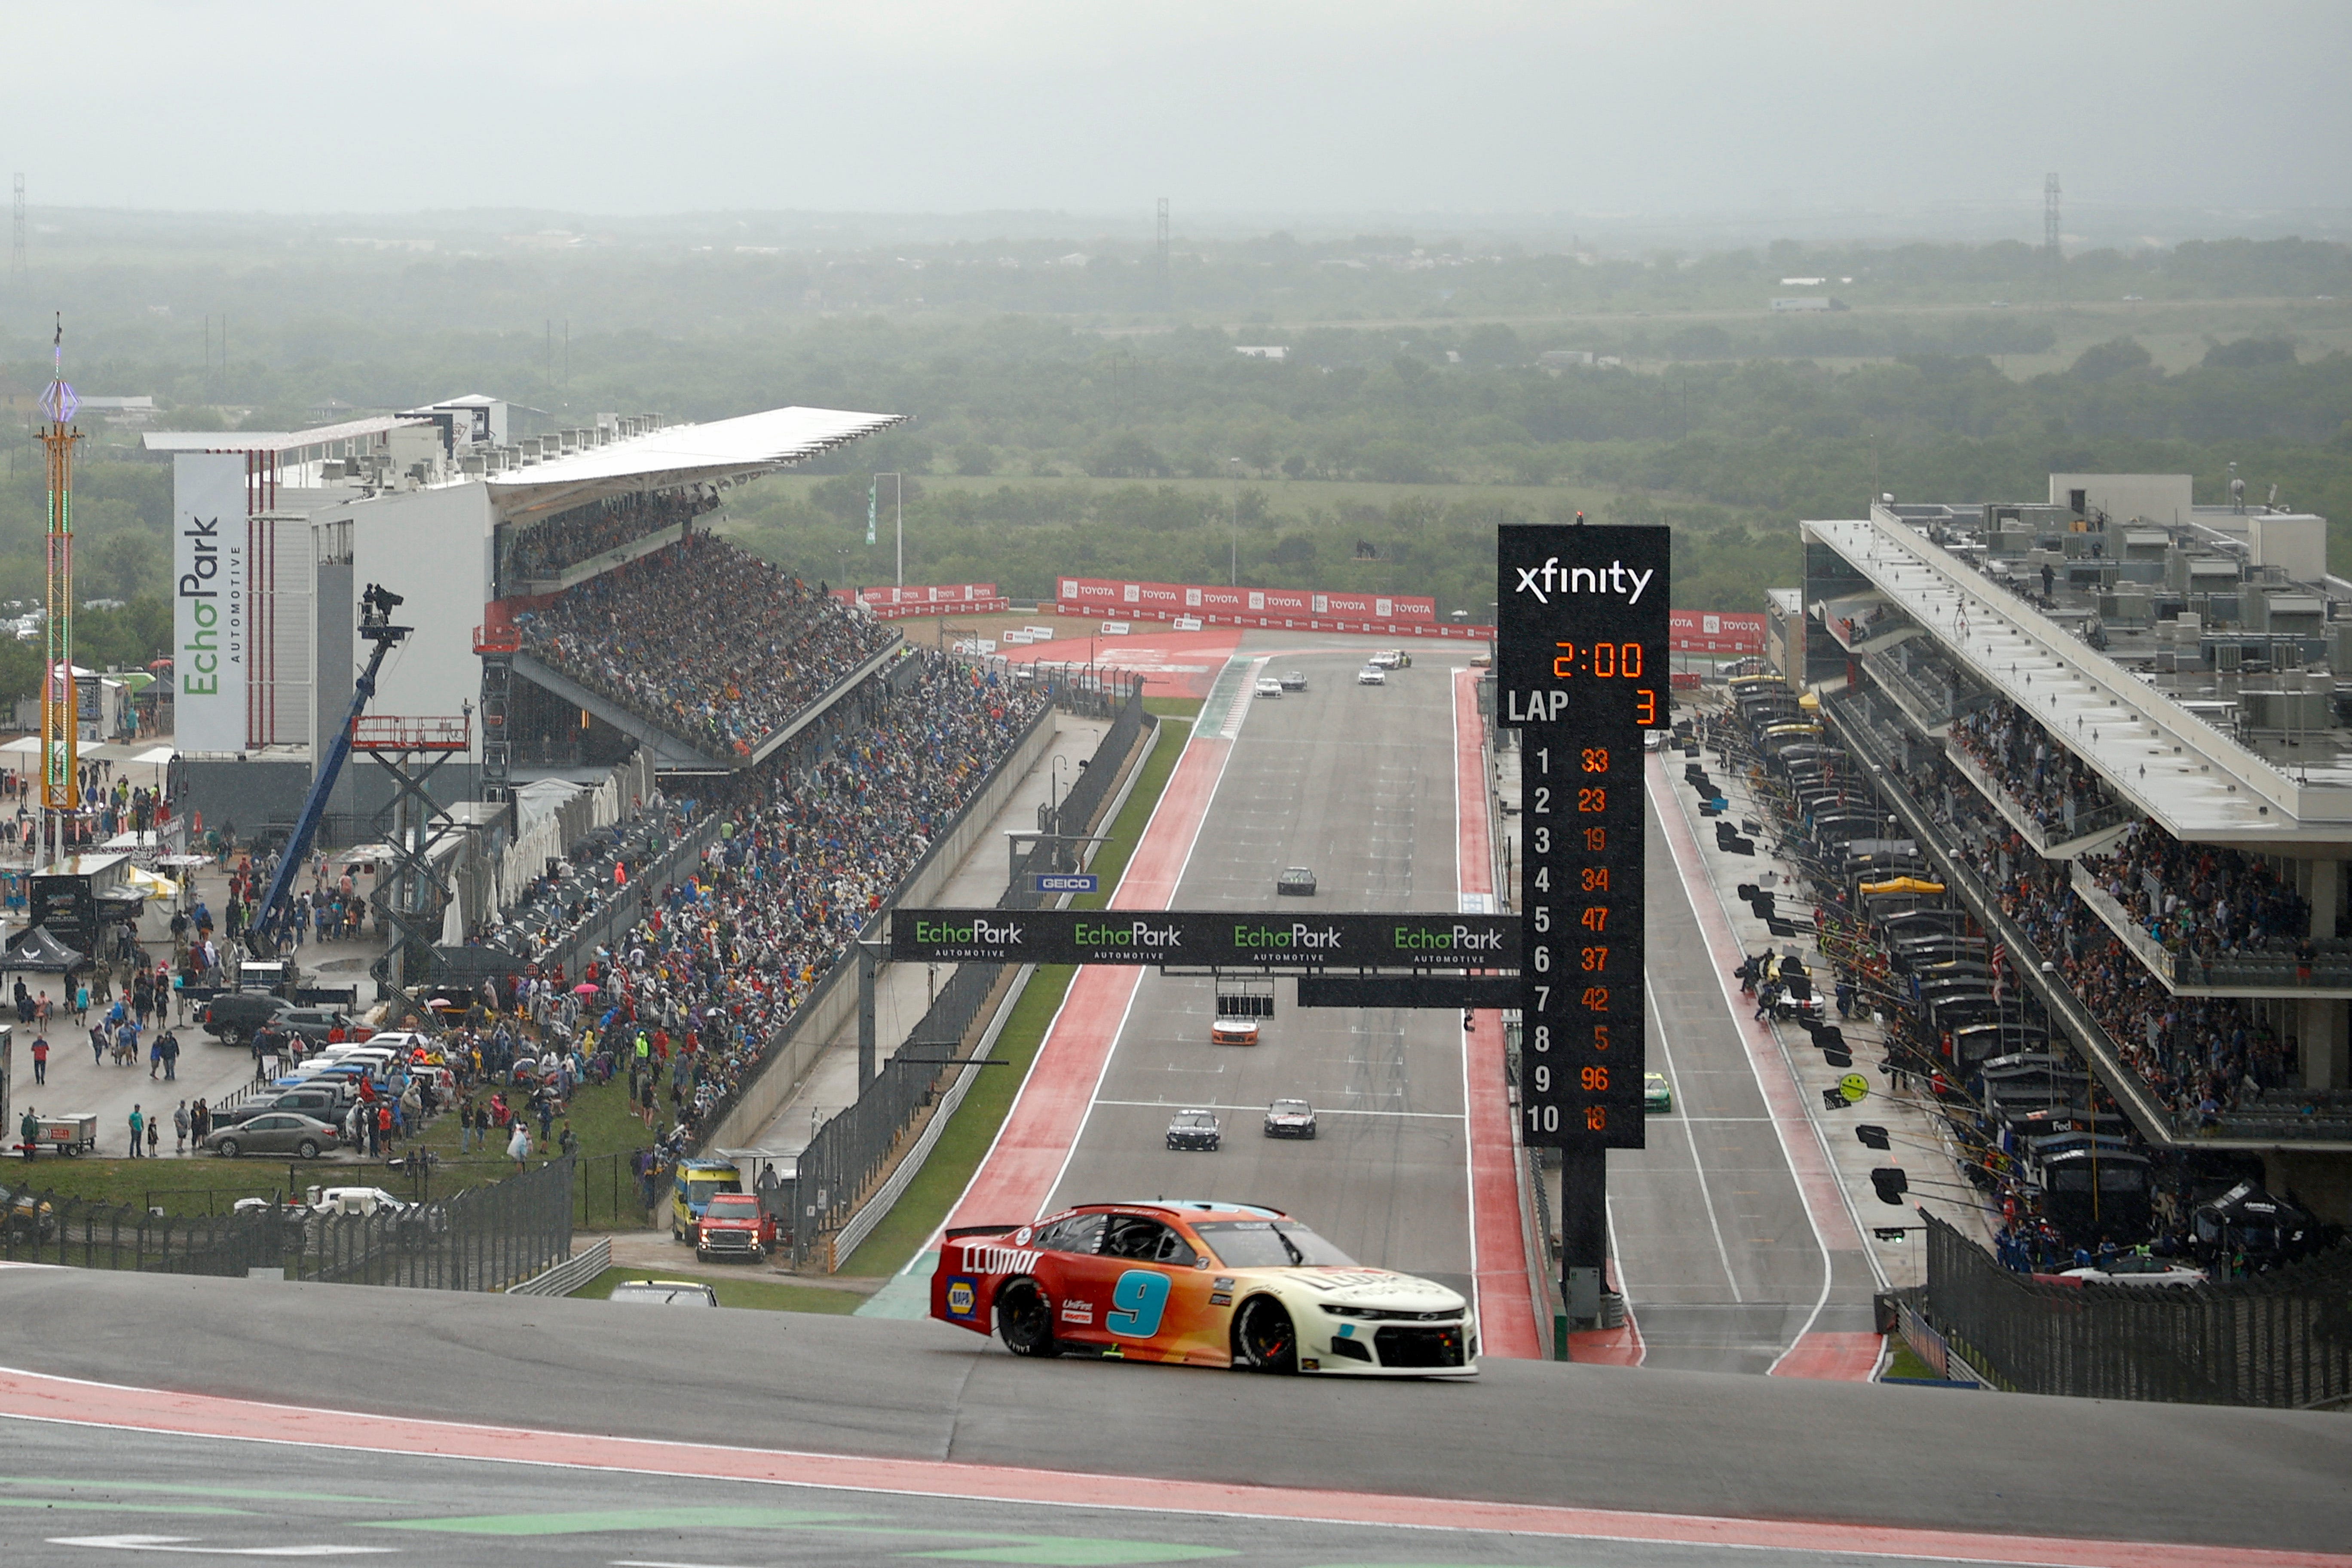 Chase Elliott wins in Austin when NASCAR race at Circuit of the Americas is called for rain